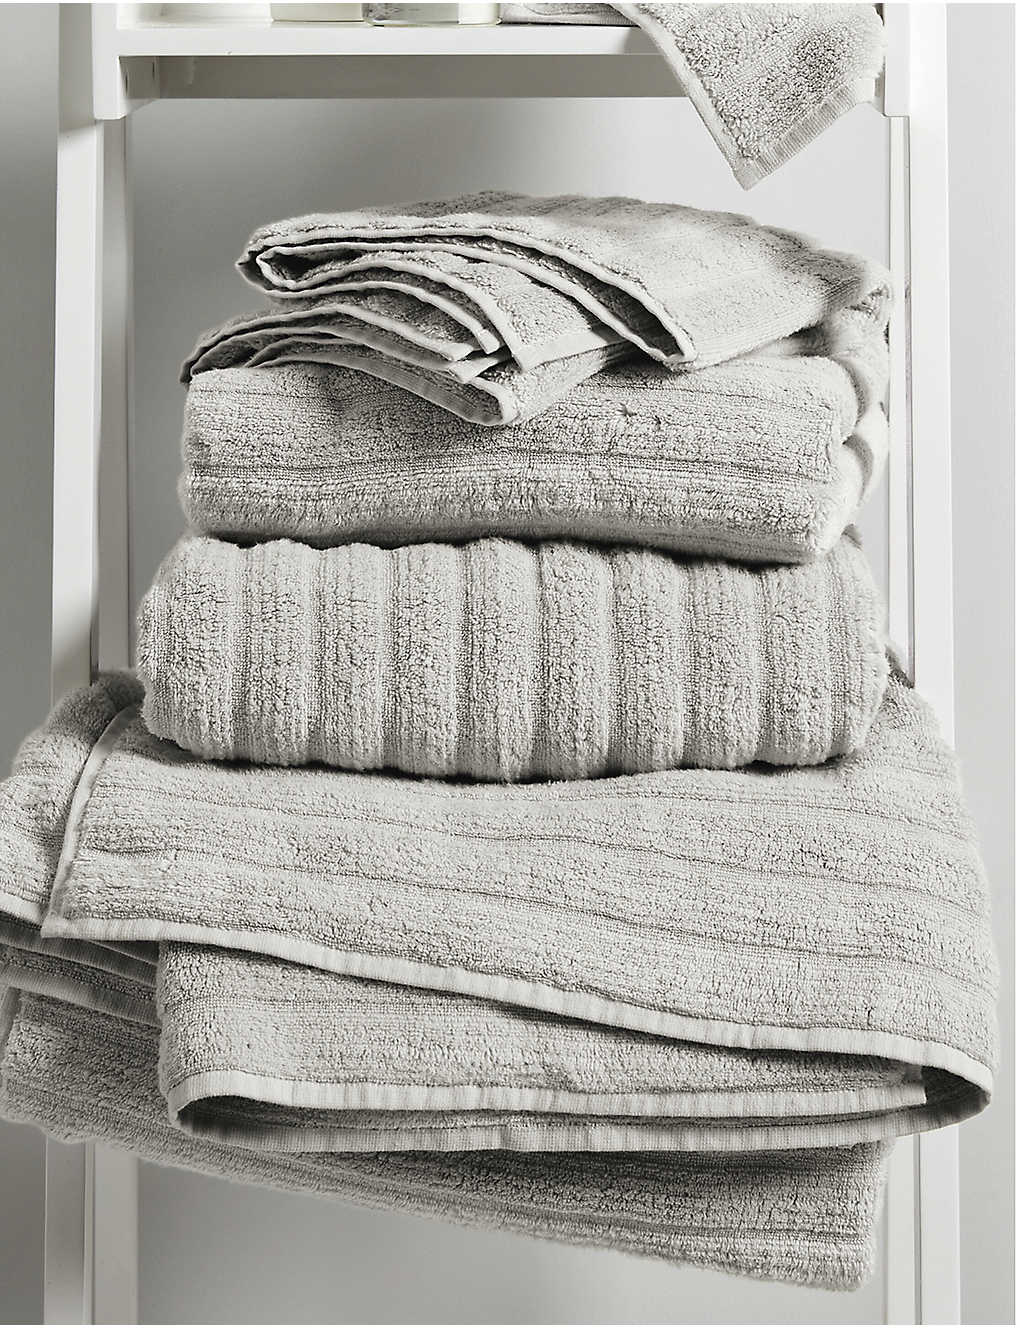 THE WHITE COMPANY: Ribbed Hydrocotton hand towel 90cm x 50cm